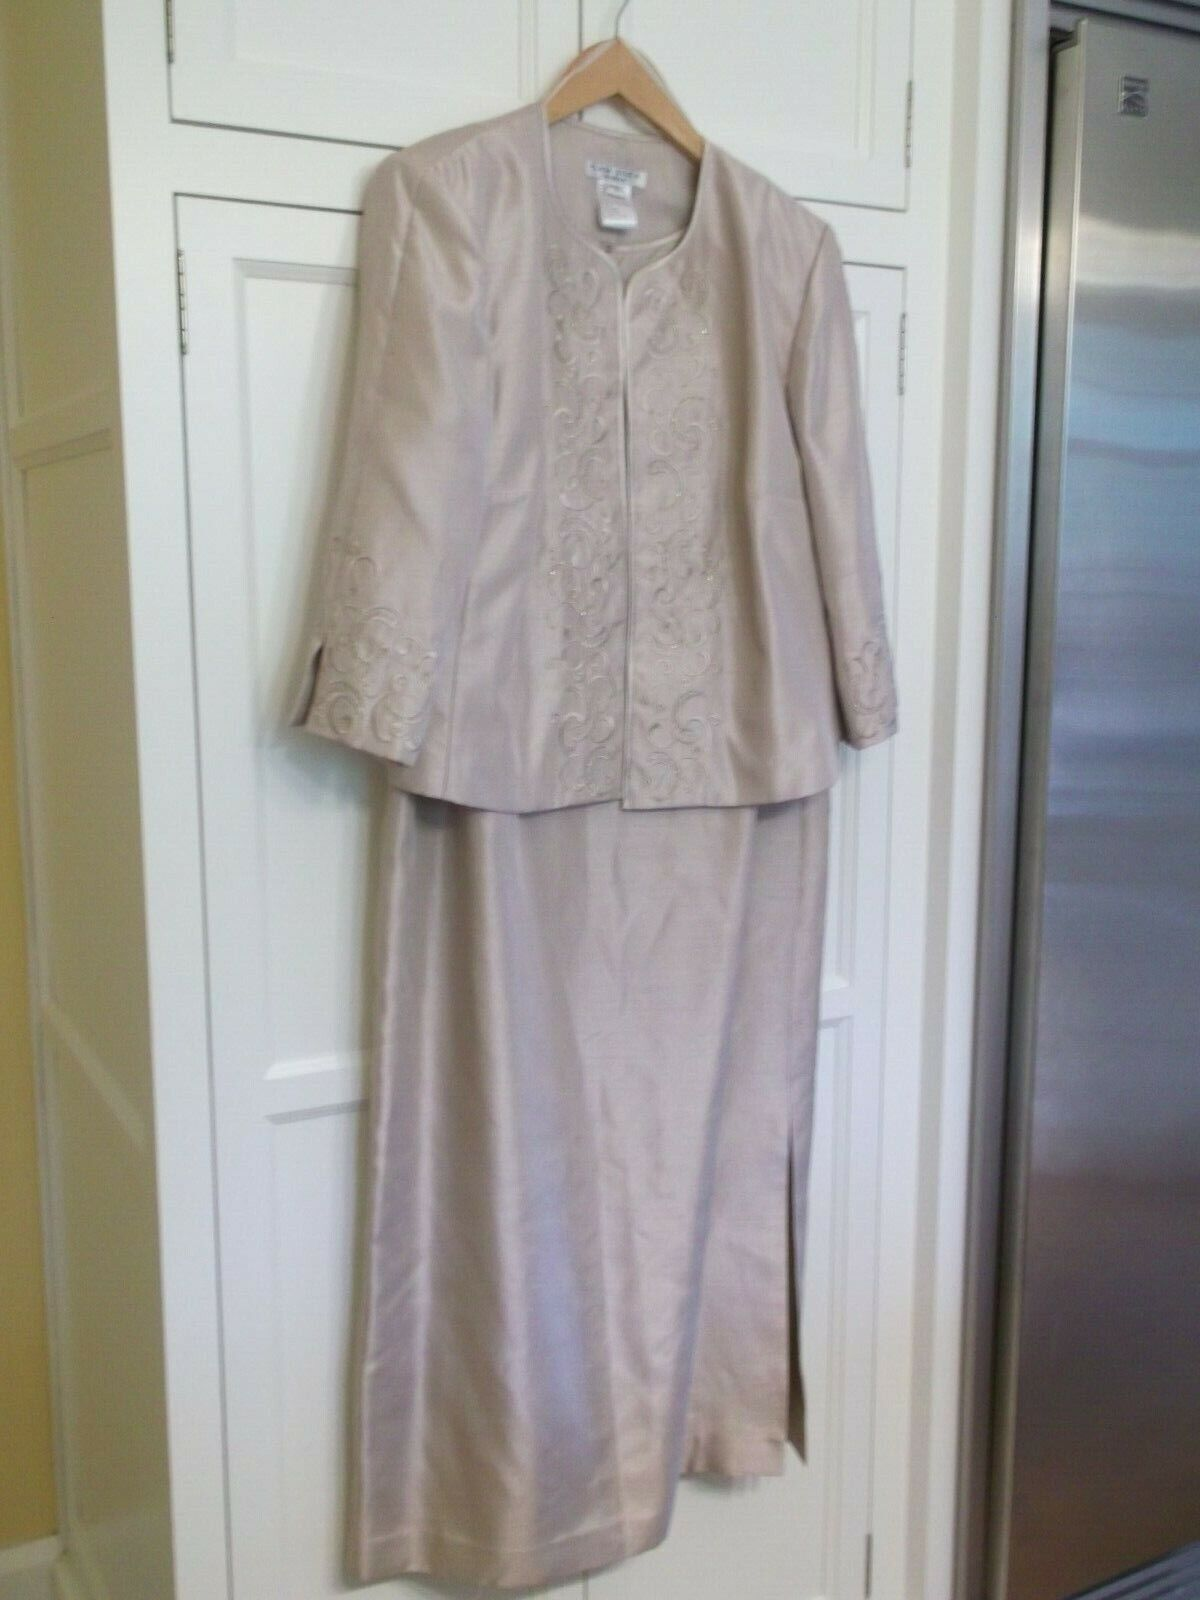 Plaza South Woman Beige Mother Of The Bride Dress 14W EUC